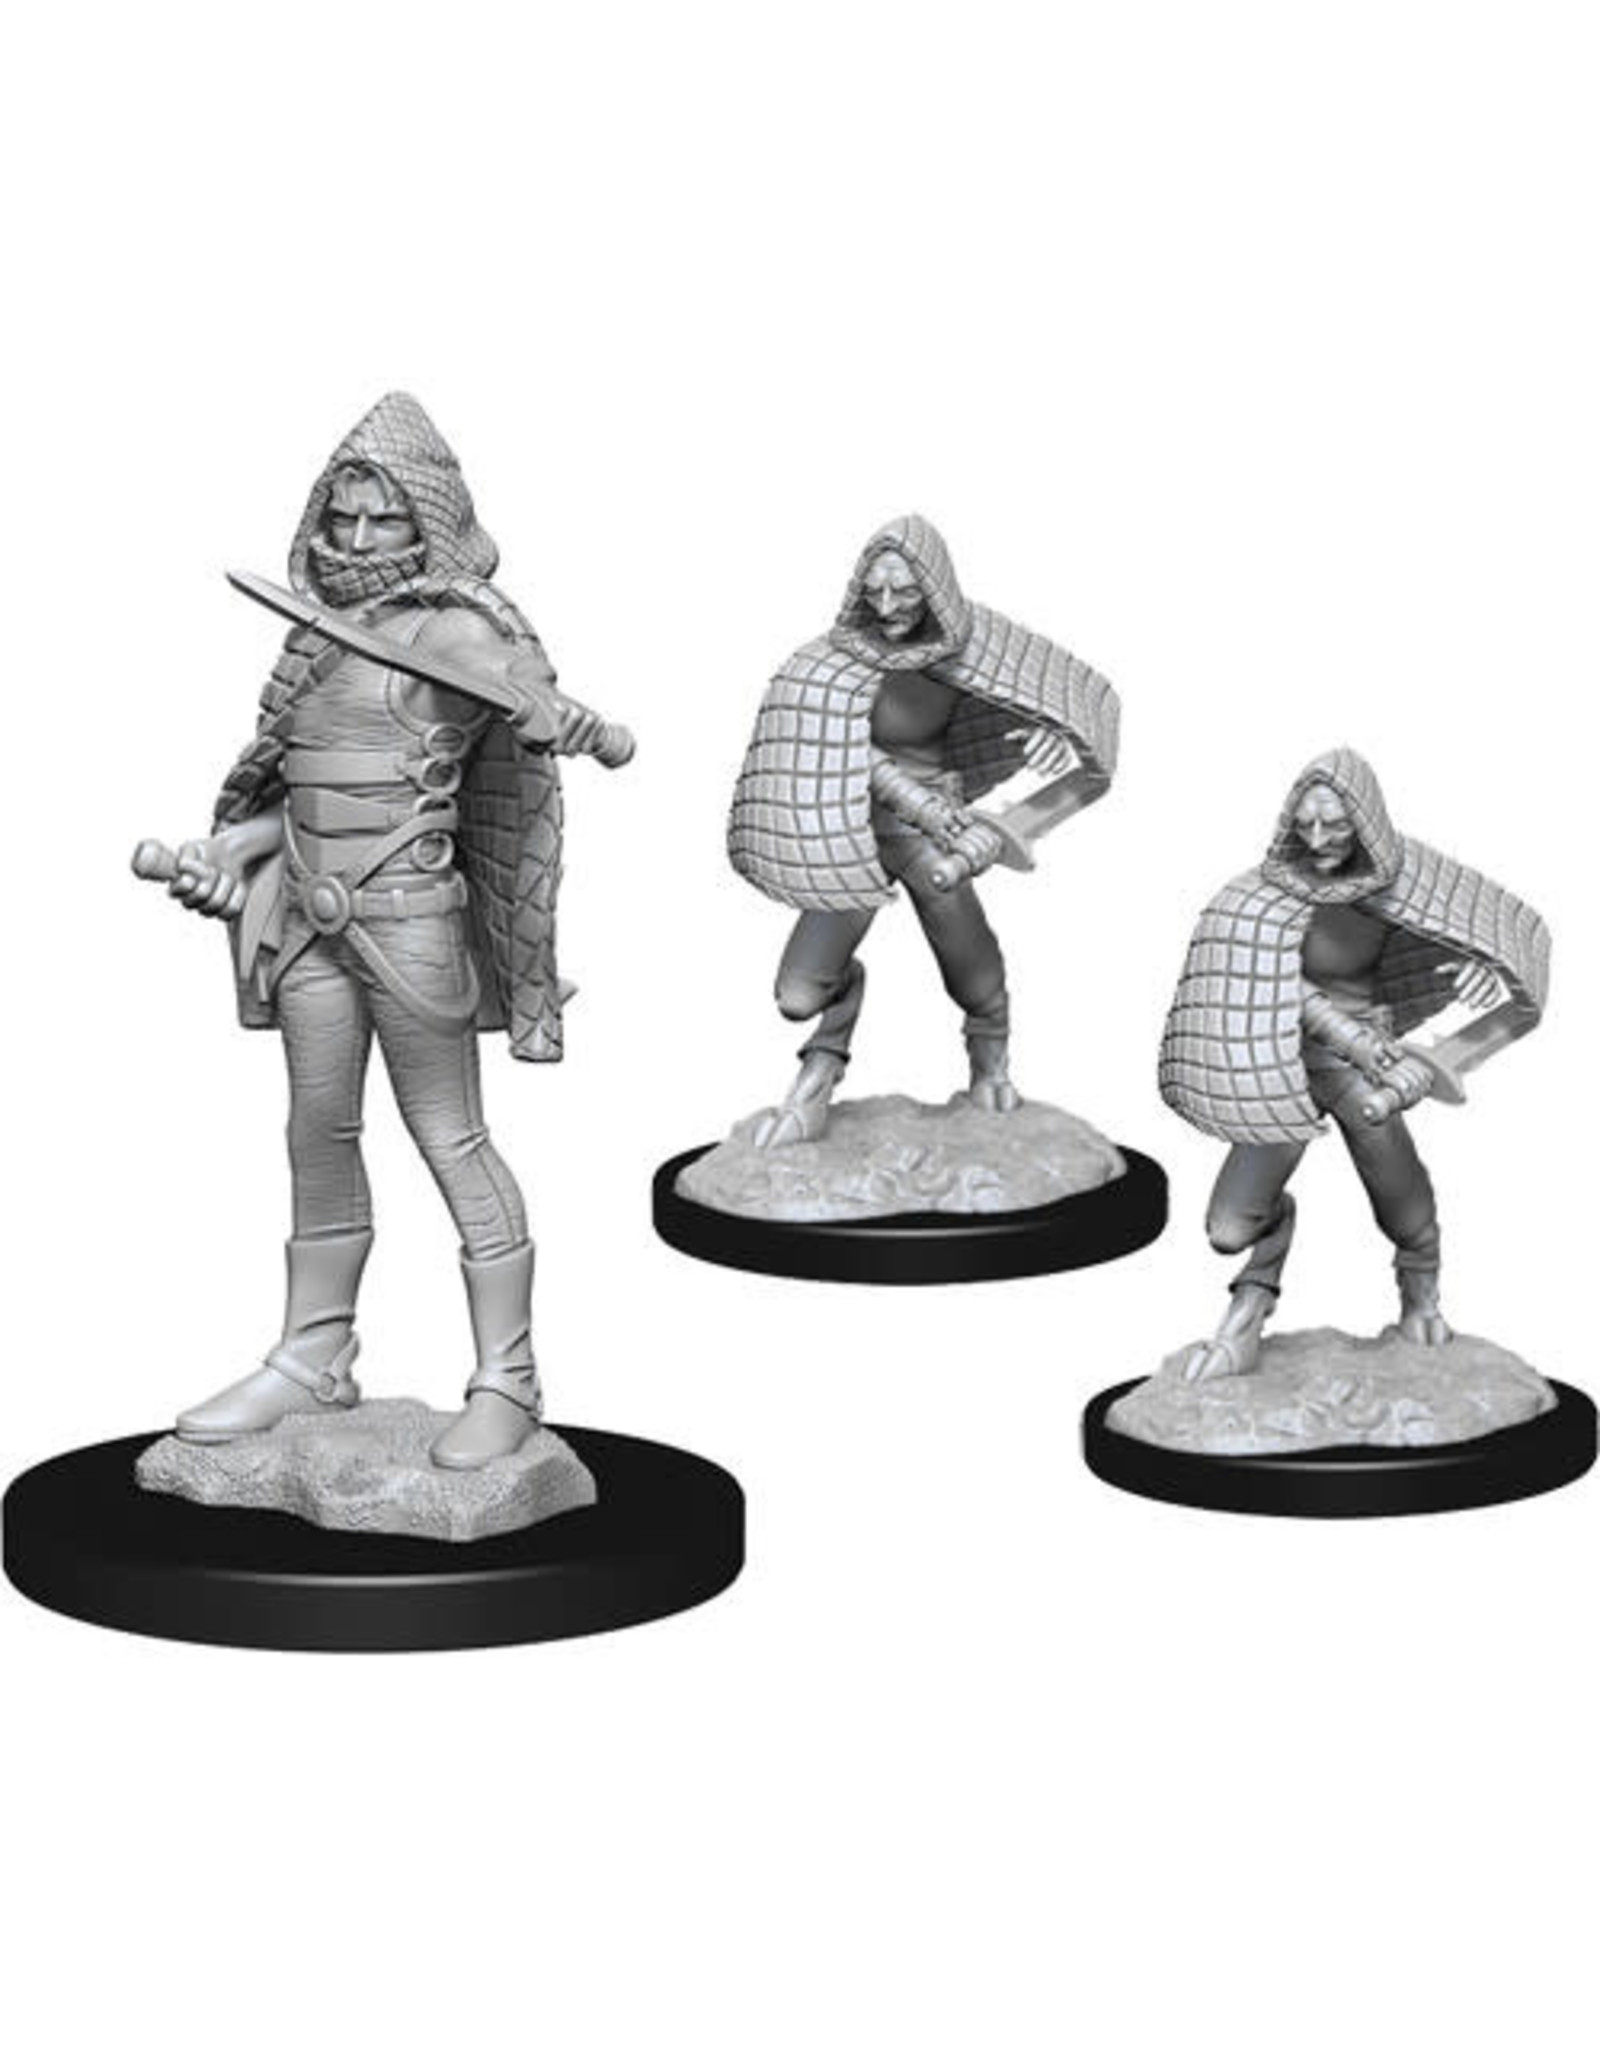 D&D Unpainted Minis: Darkling Elder & Darklings (Wave 13)